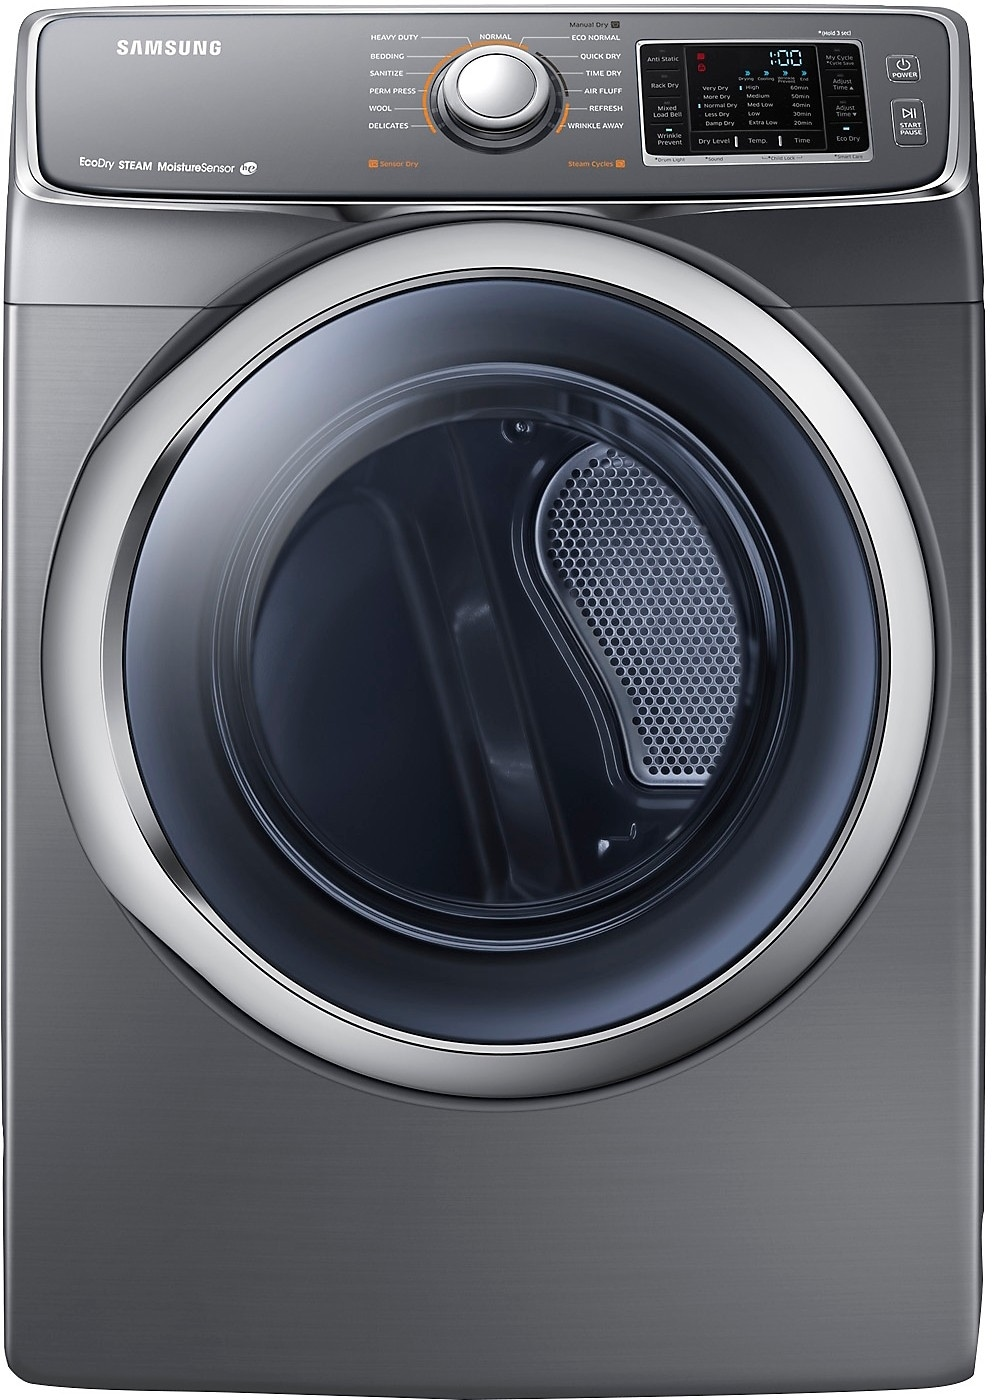 Washers and Dryers - Samsung 7.5 Cu. Ft. Electric Dryer with Ecodry – Platinum